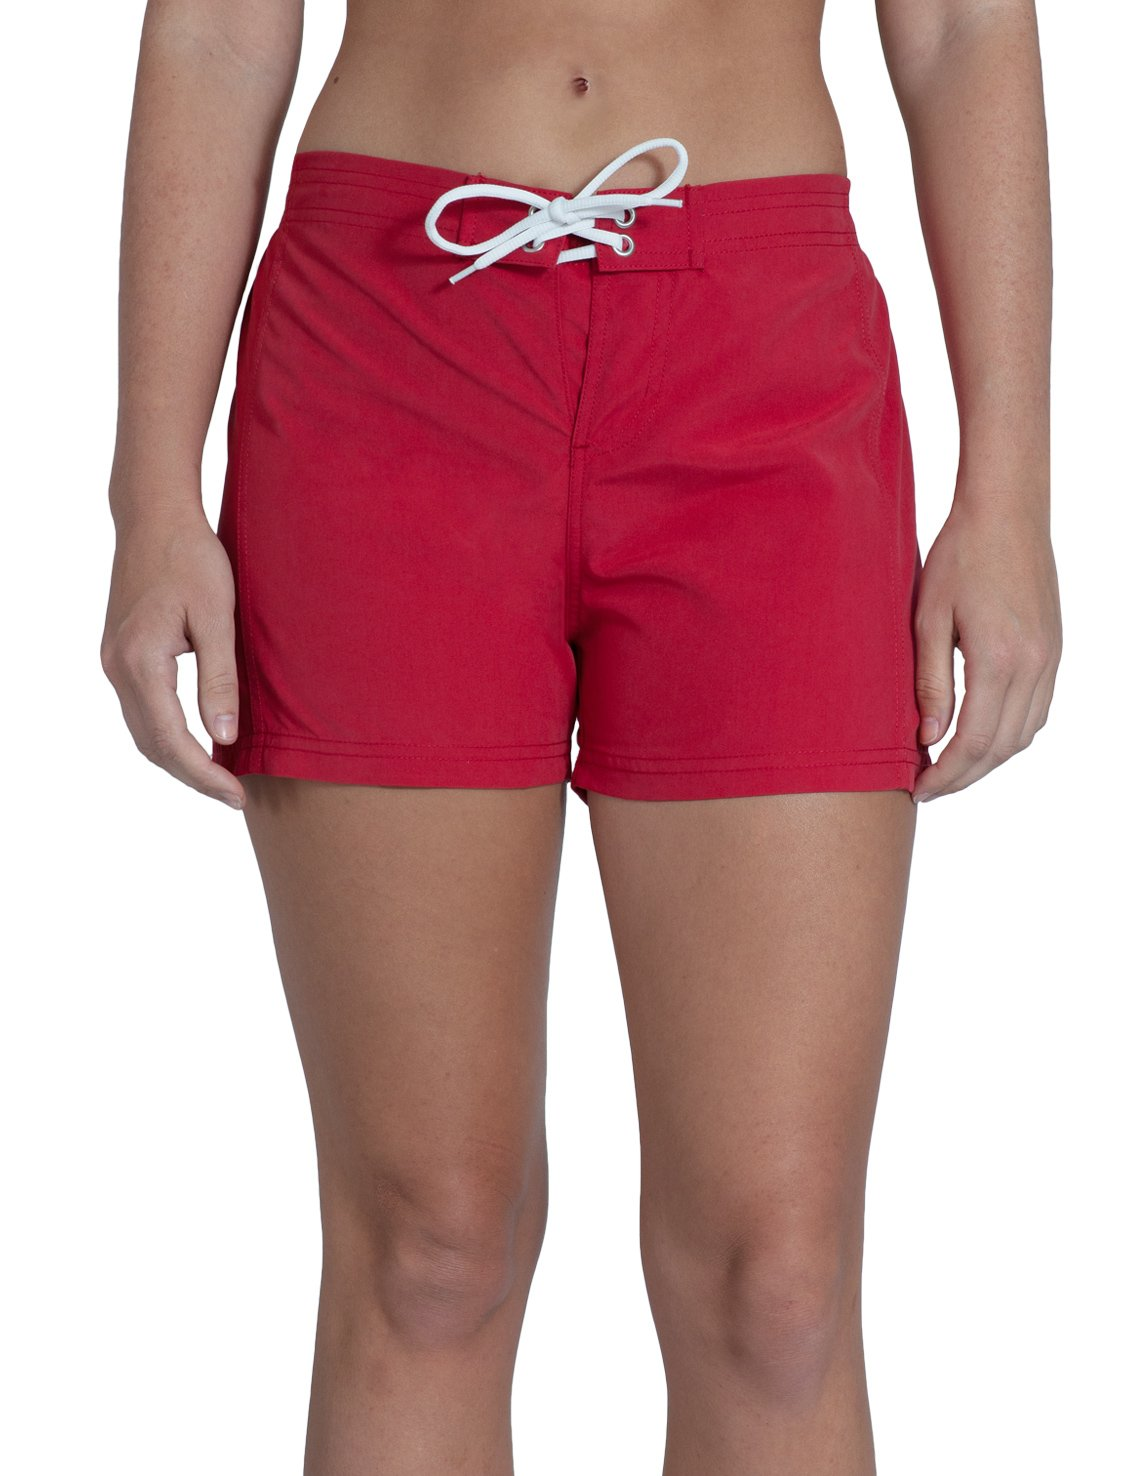 Tuga Women's Lifeguard Board Shorts - Adult and Youth - UPF 50+ Sun Protection